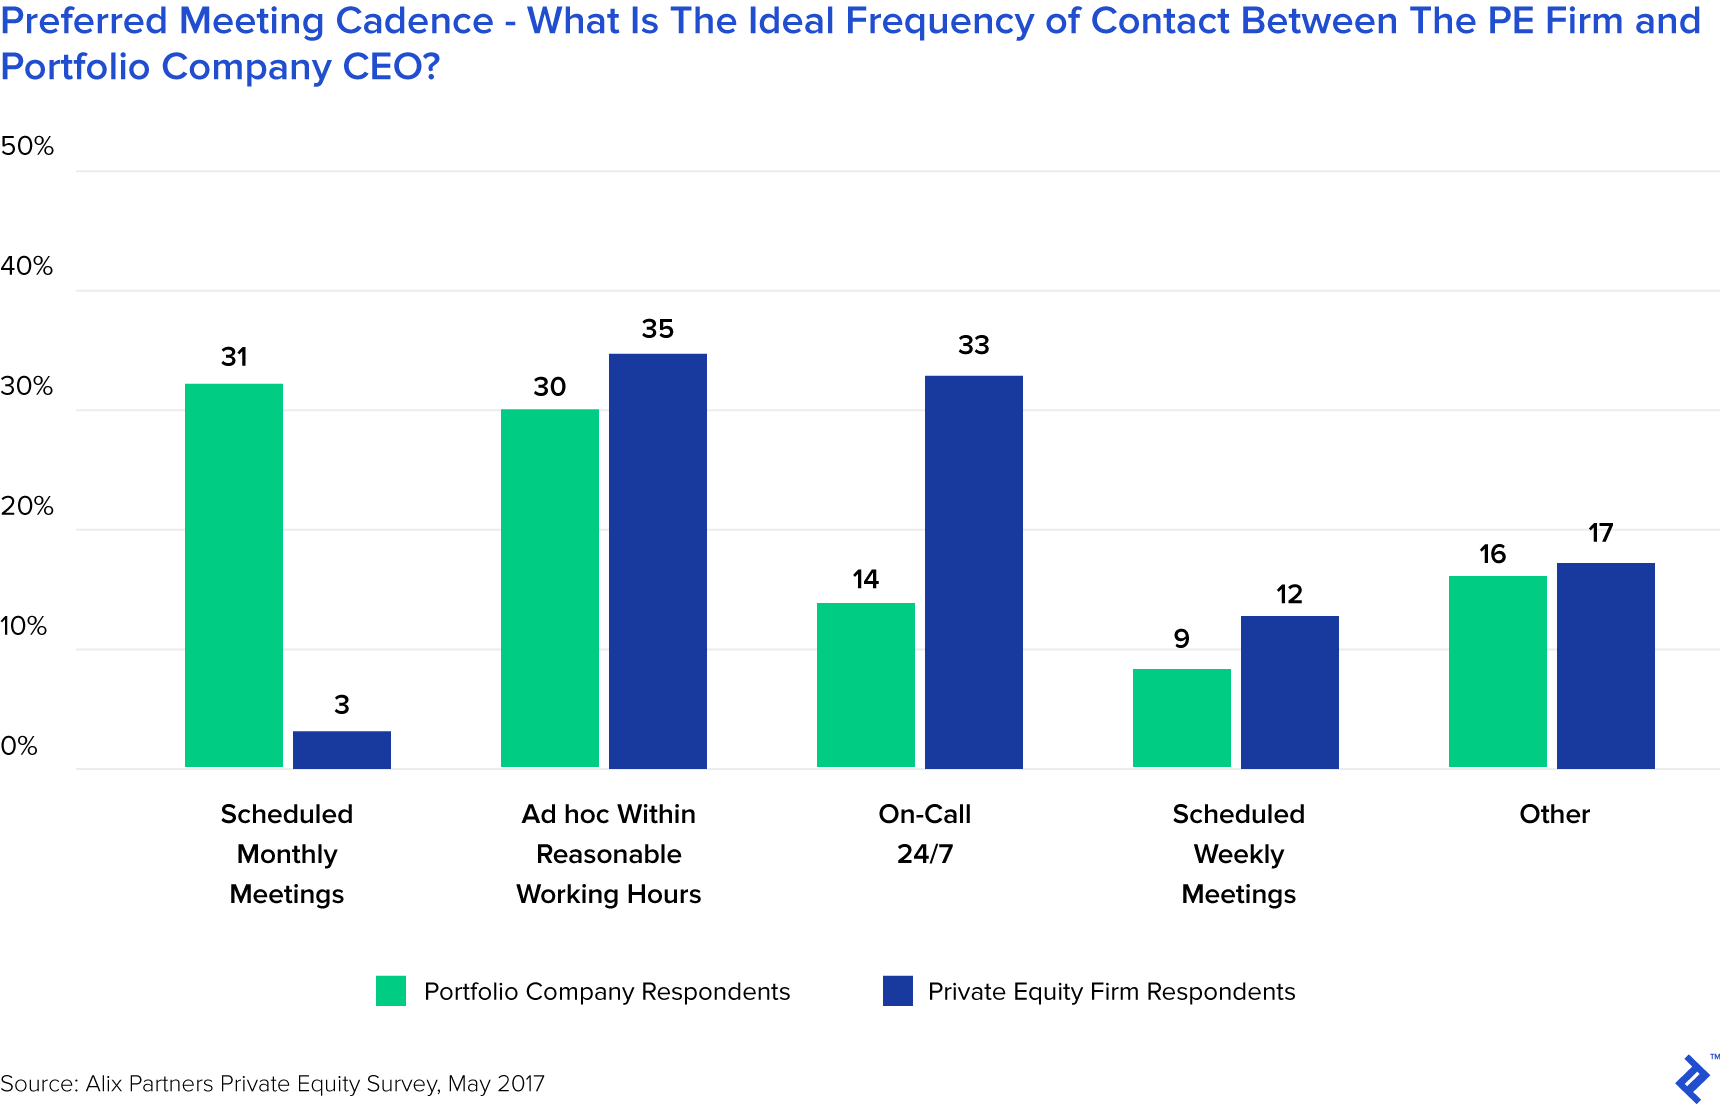 Preferred Meeting Cadence - What Is the Ideal Frequency of Contact Between the PE Firm and Portfolio Company CEO?